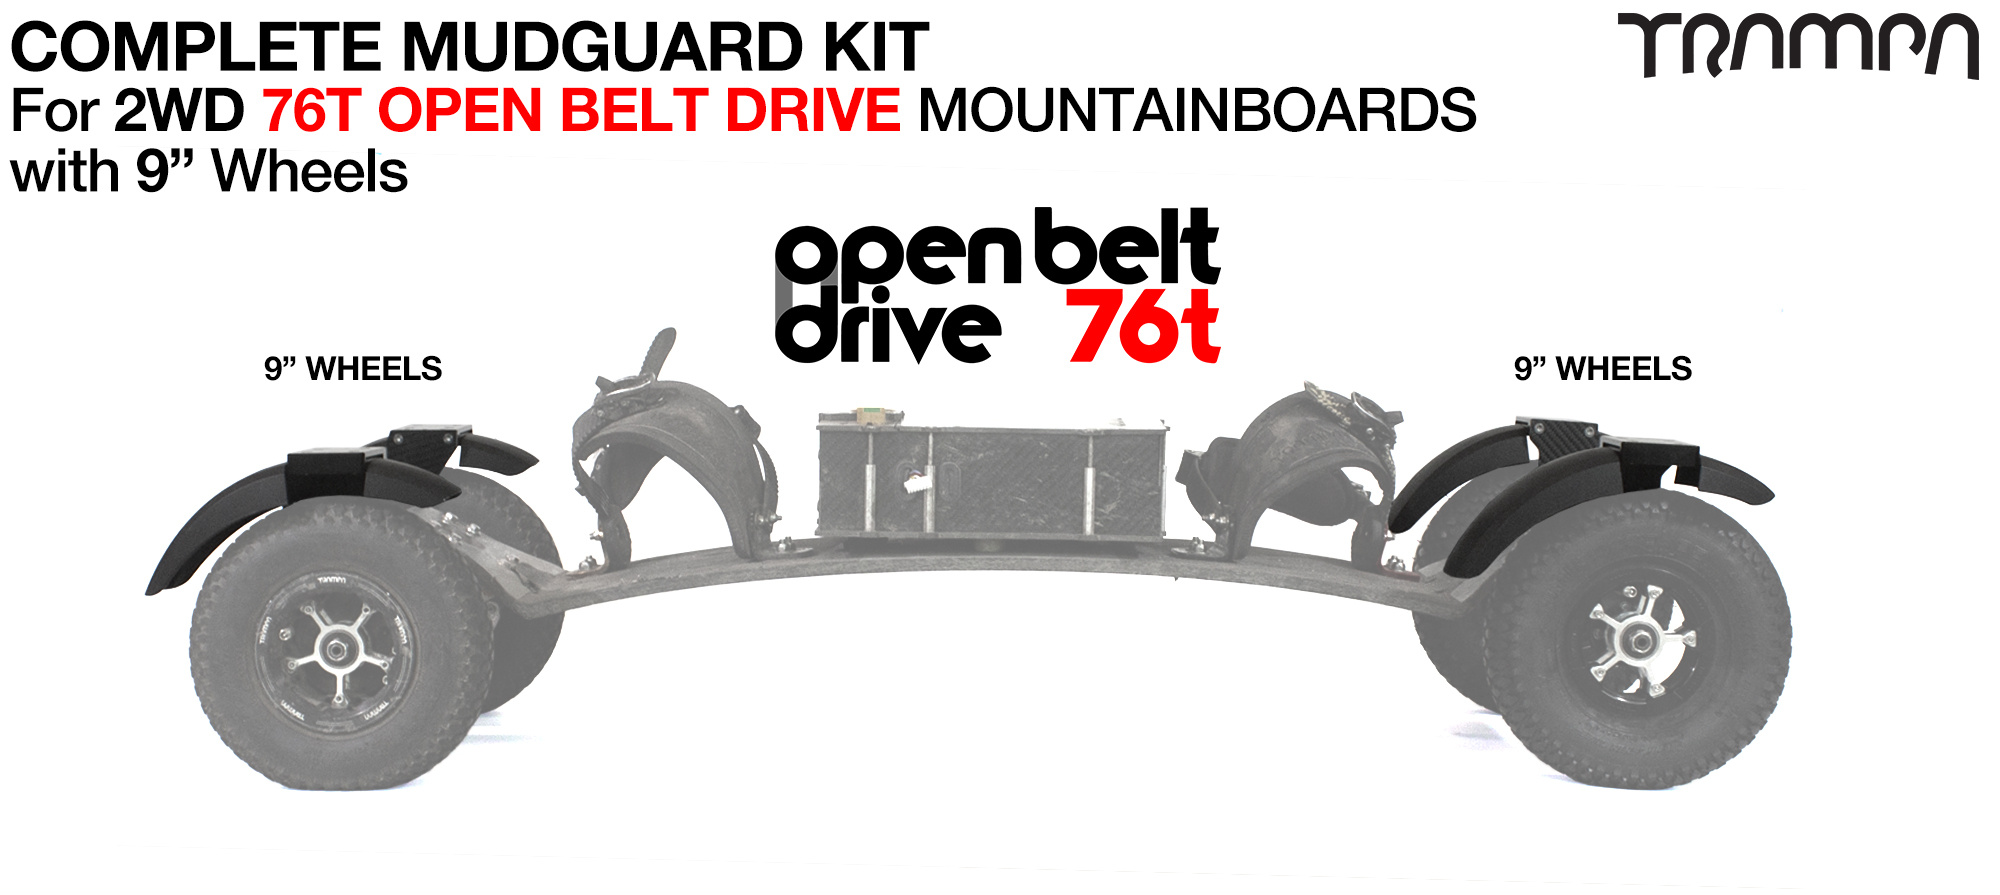 """Full Mudguard Kit for 2WD 76T OPEN BELT DRIVE Mountainboards - 9"""" Wheels All round"""